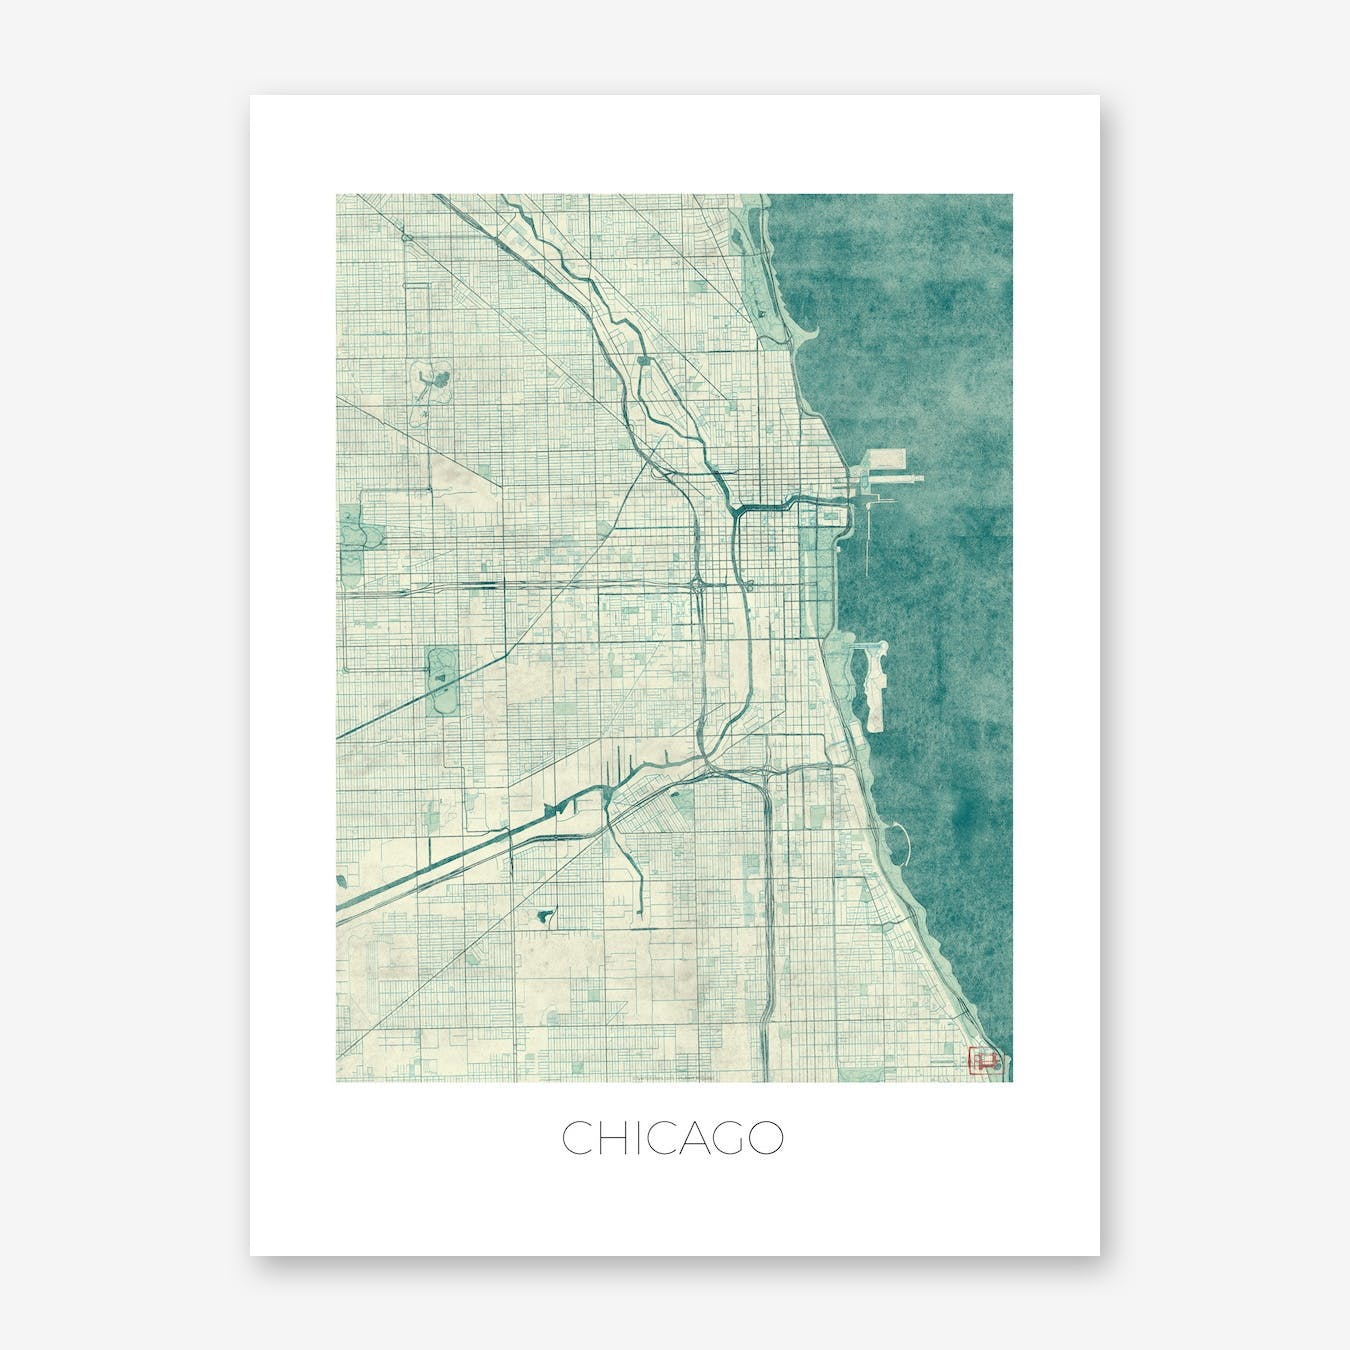 Chicago Map Vintage in Blue